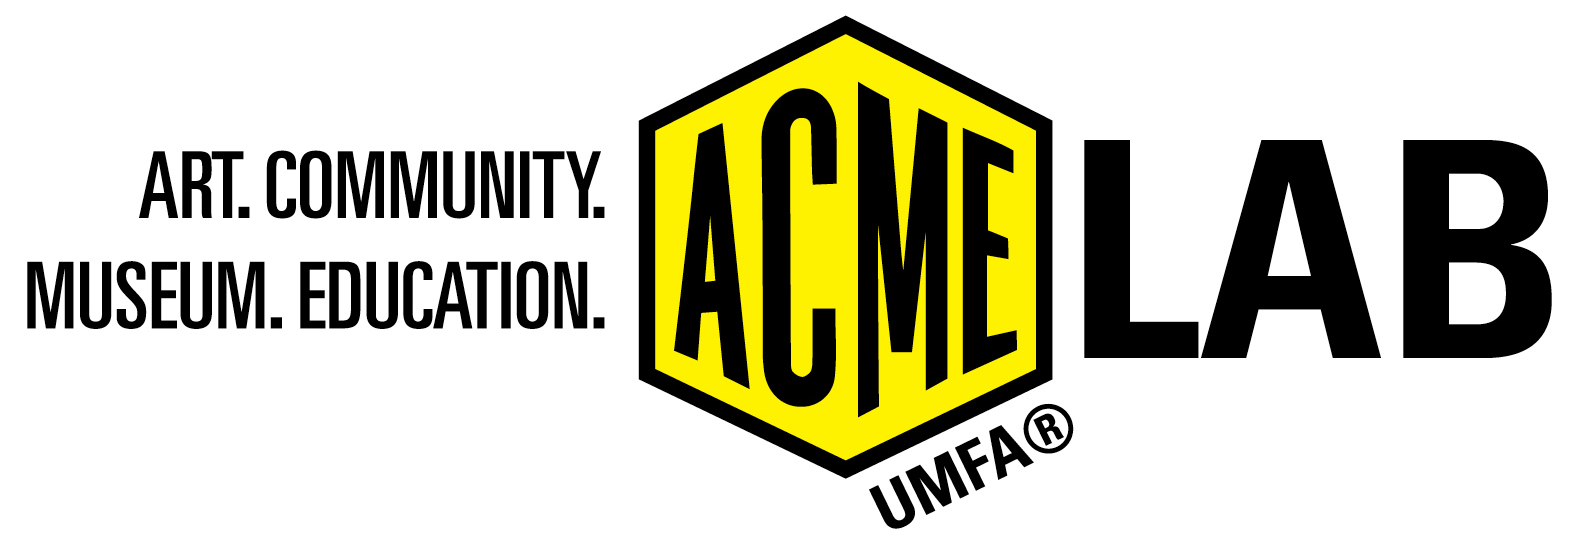 ACME Lab logo Art Community Museum Education